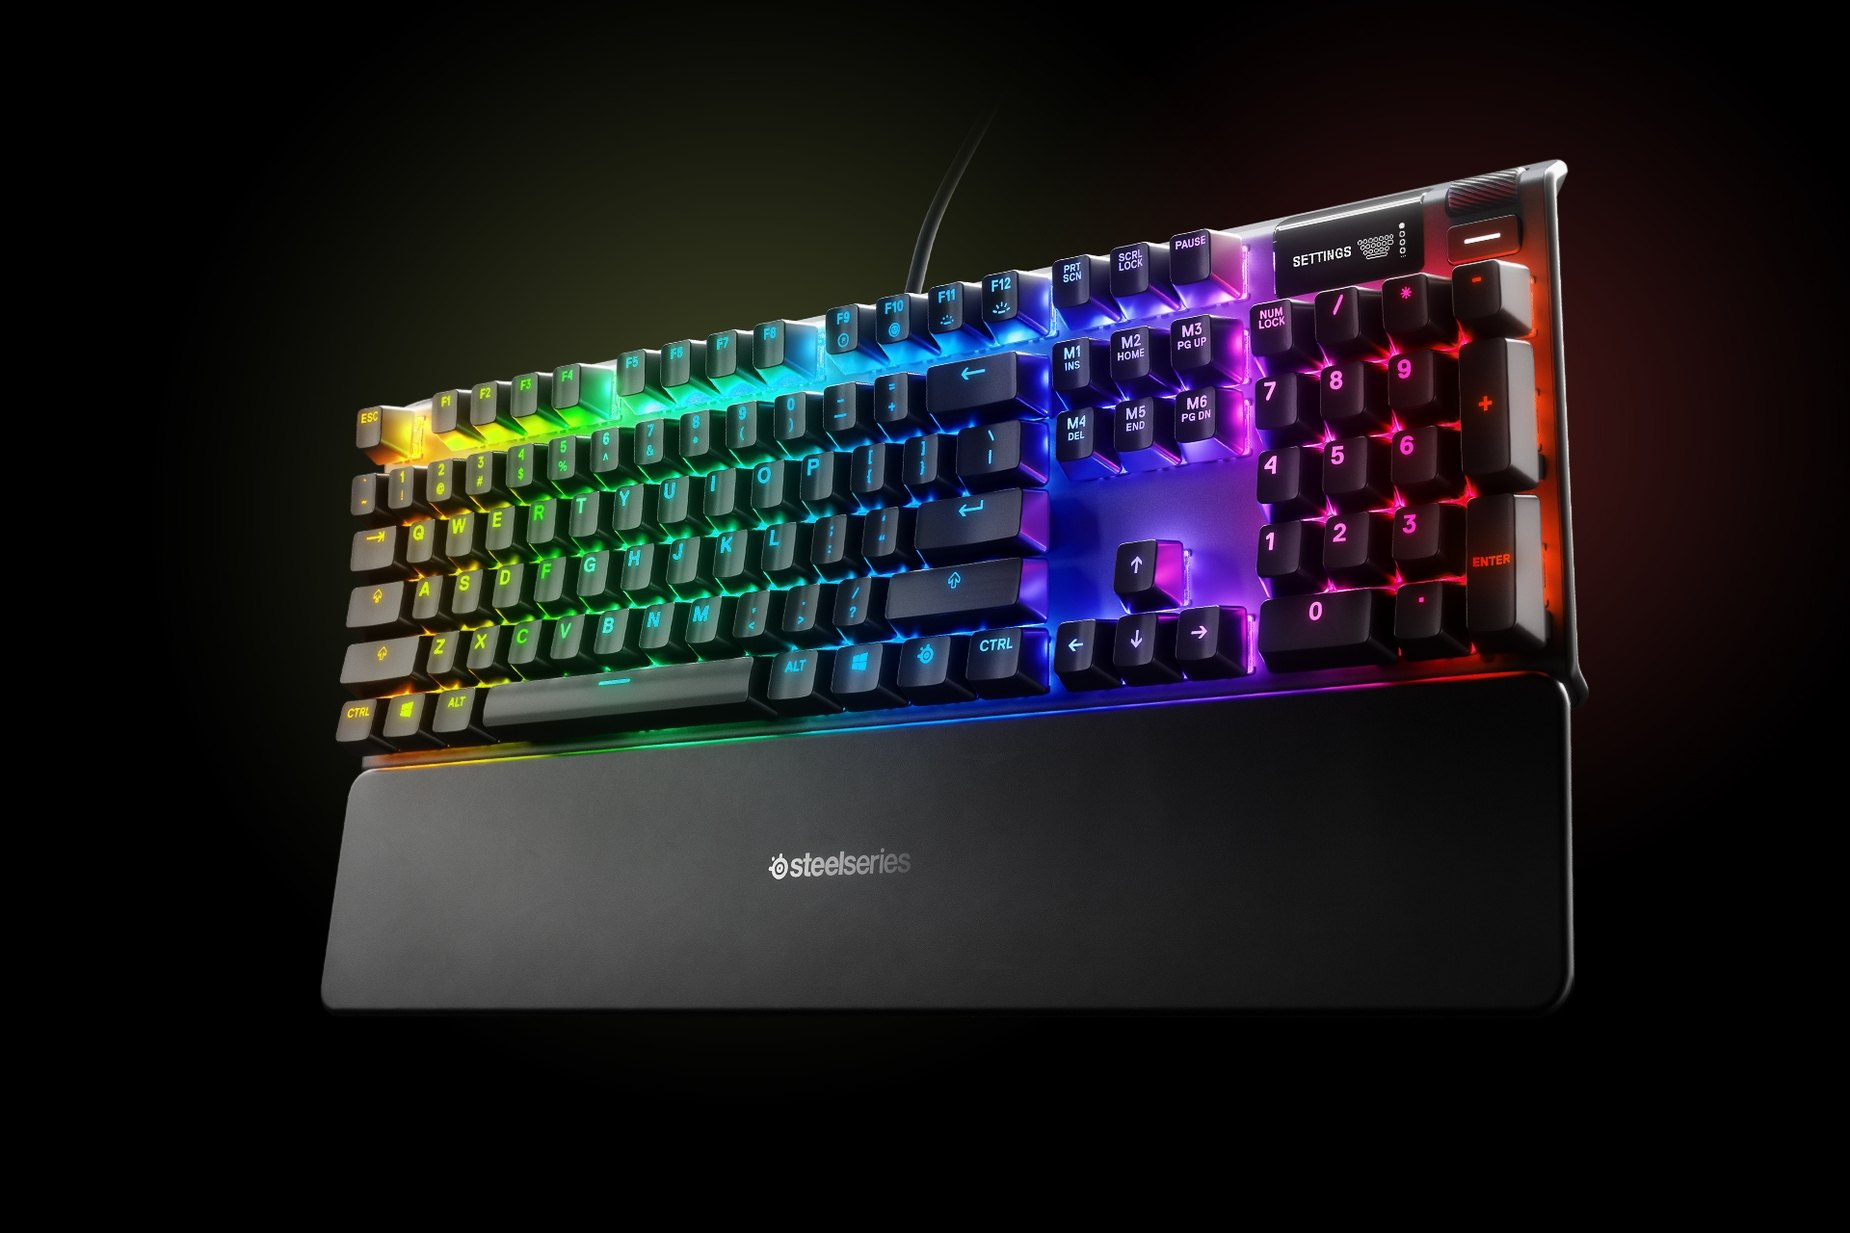 Russian-Apex 7 (Red Switch) gaming keyboard with the illumination lit up on dark background, also shows the OLED screen and controls used to change settings and adjust audio